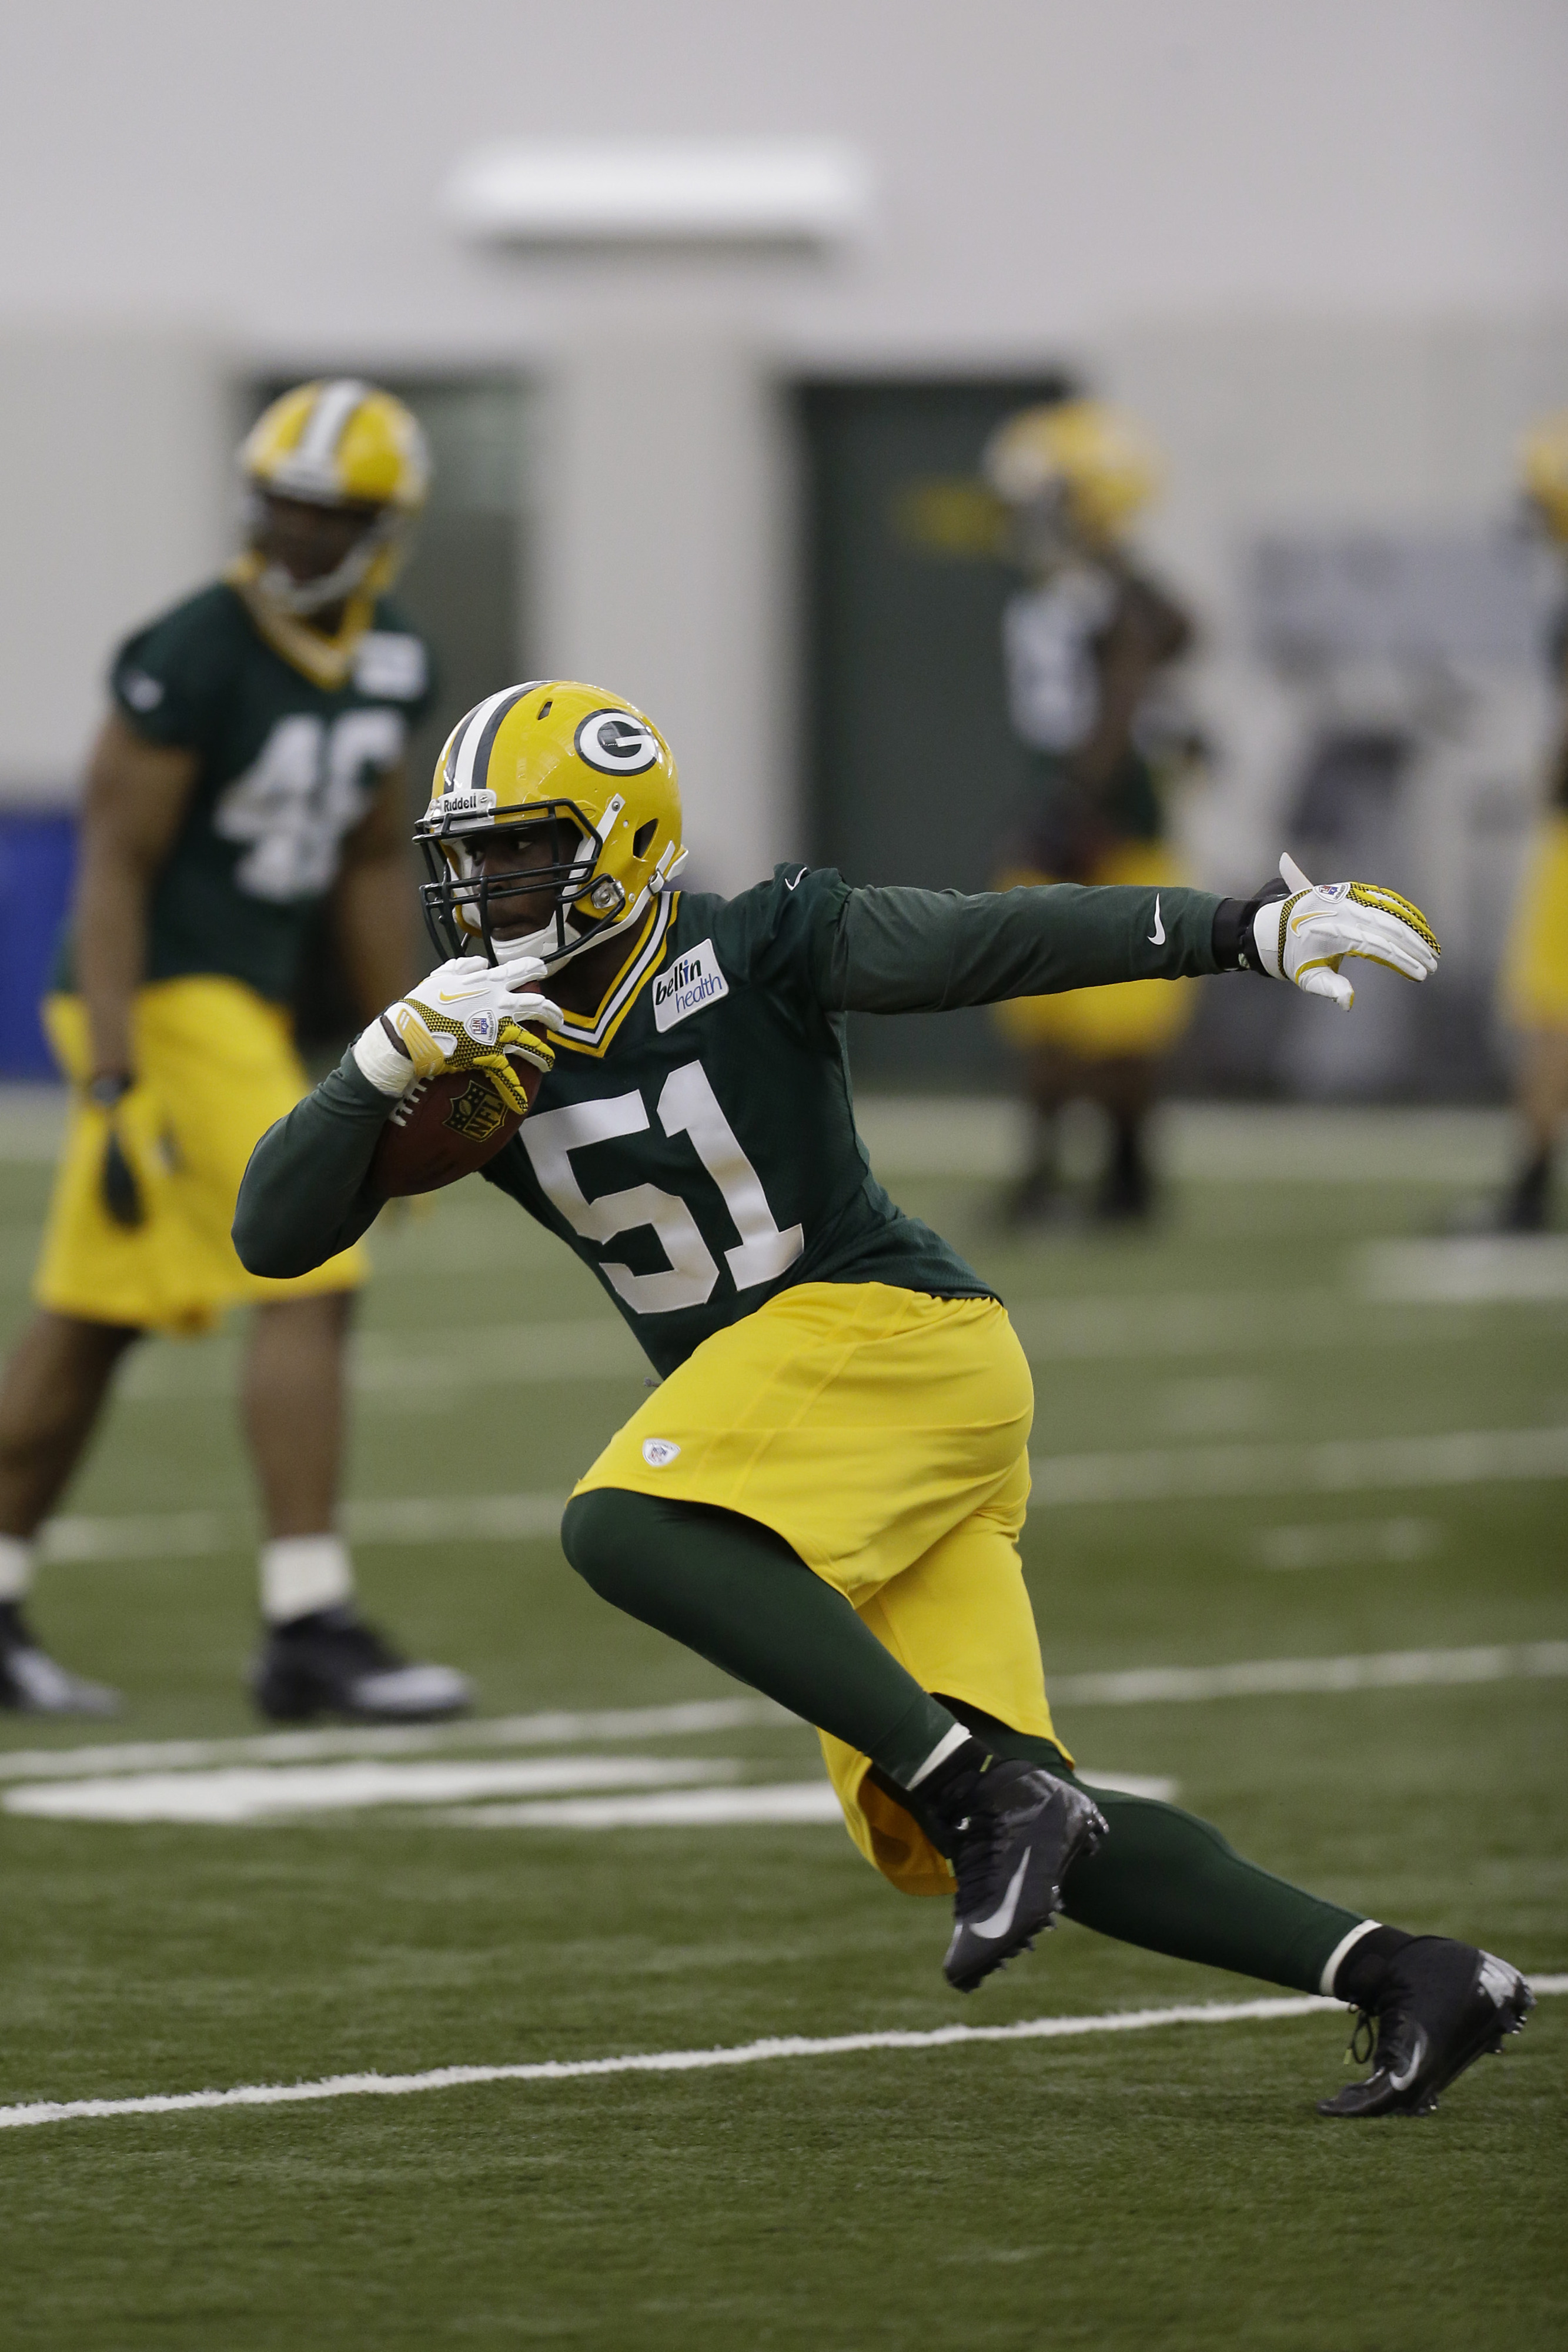 Packers OLB Nate Palmer during the 2013 offseason